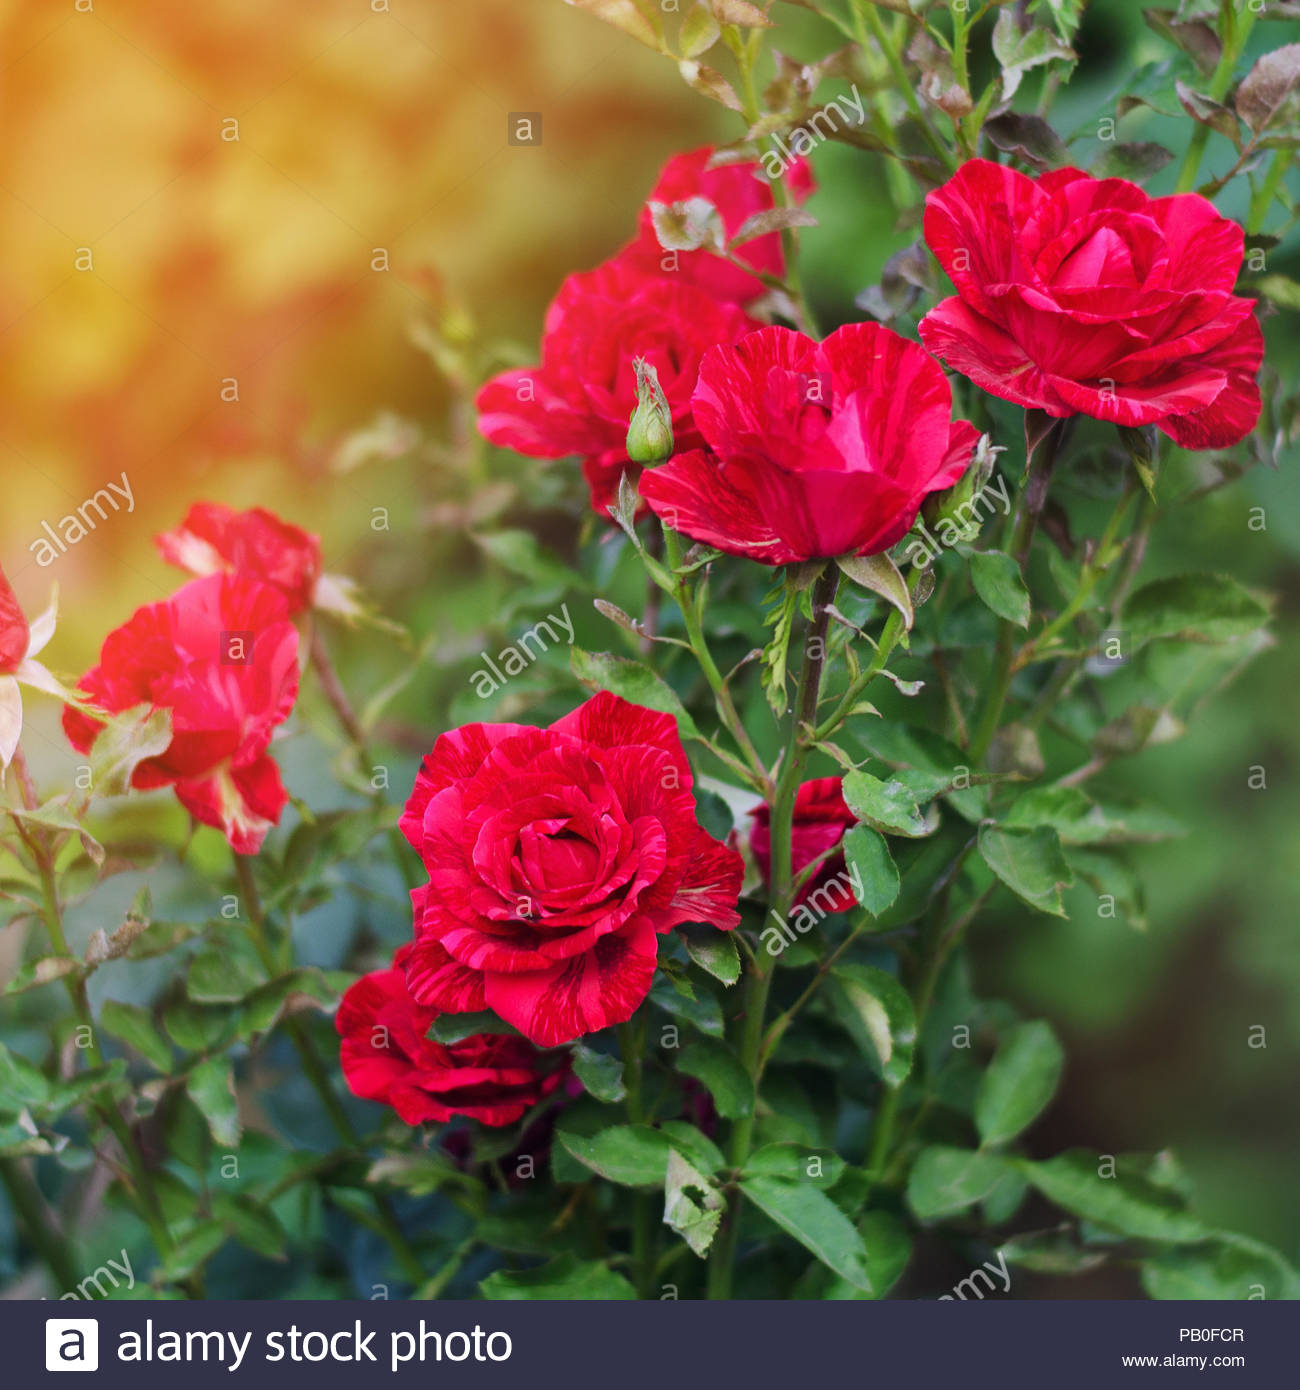 Free Download Beautiful Red Roses In The Garden Nature Wallpaper Flowers Bush 1300x1390 For Your Desktop Mobile Tablet Explore 25 Beautiful Wallpapers Flowers Beautiful Flowers Wallpapers Beautiful Flowers Wallpaper